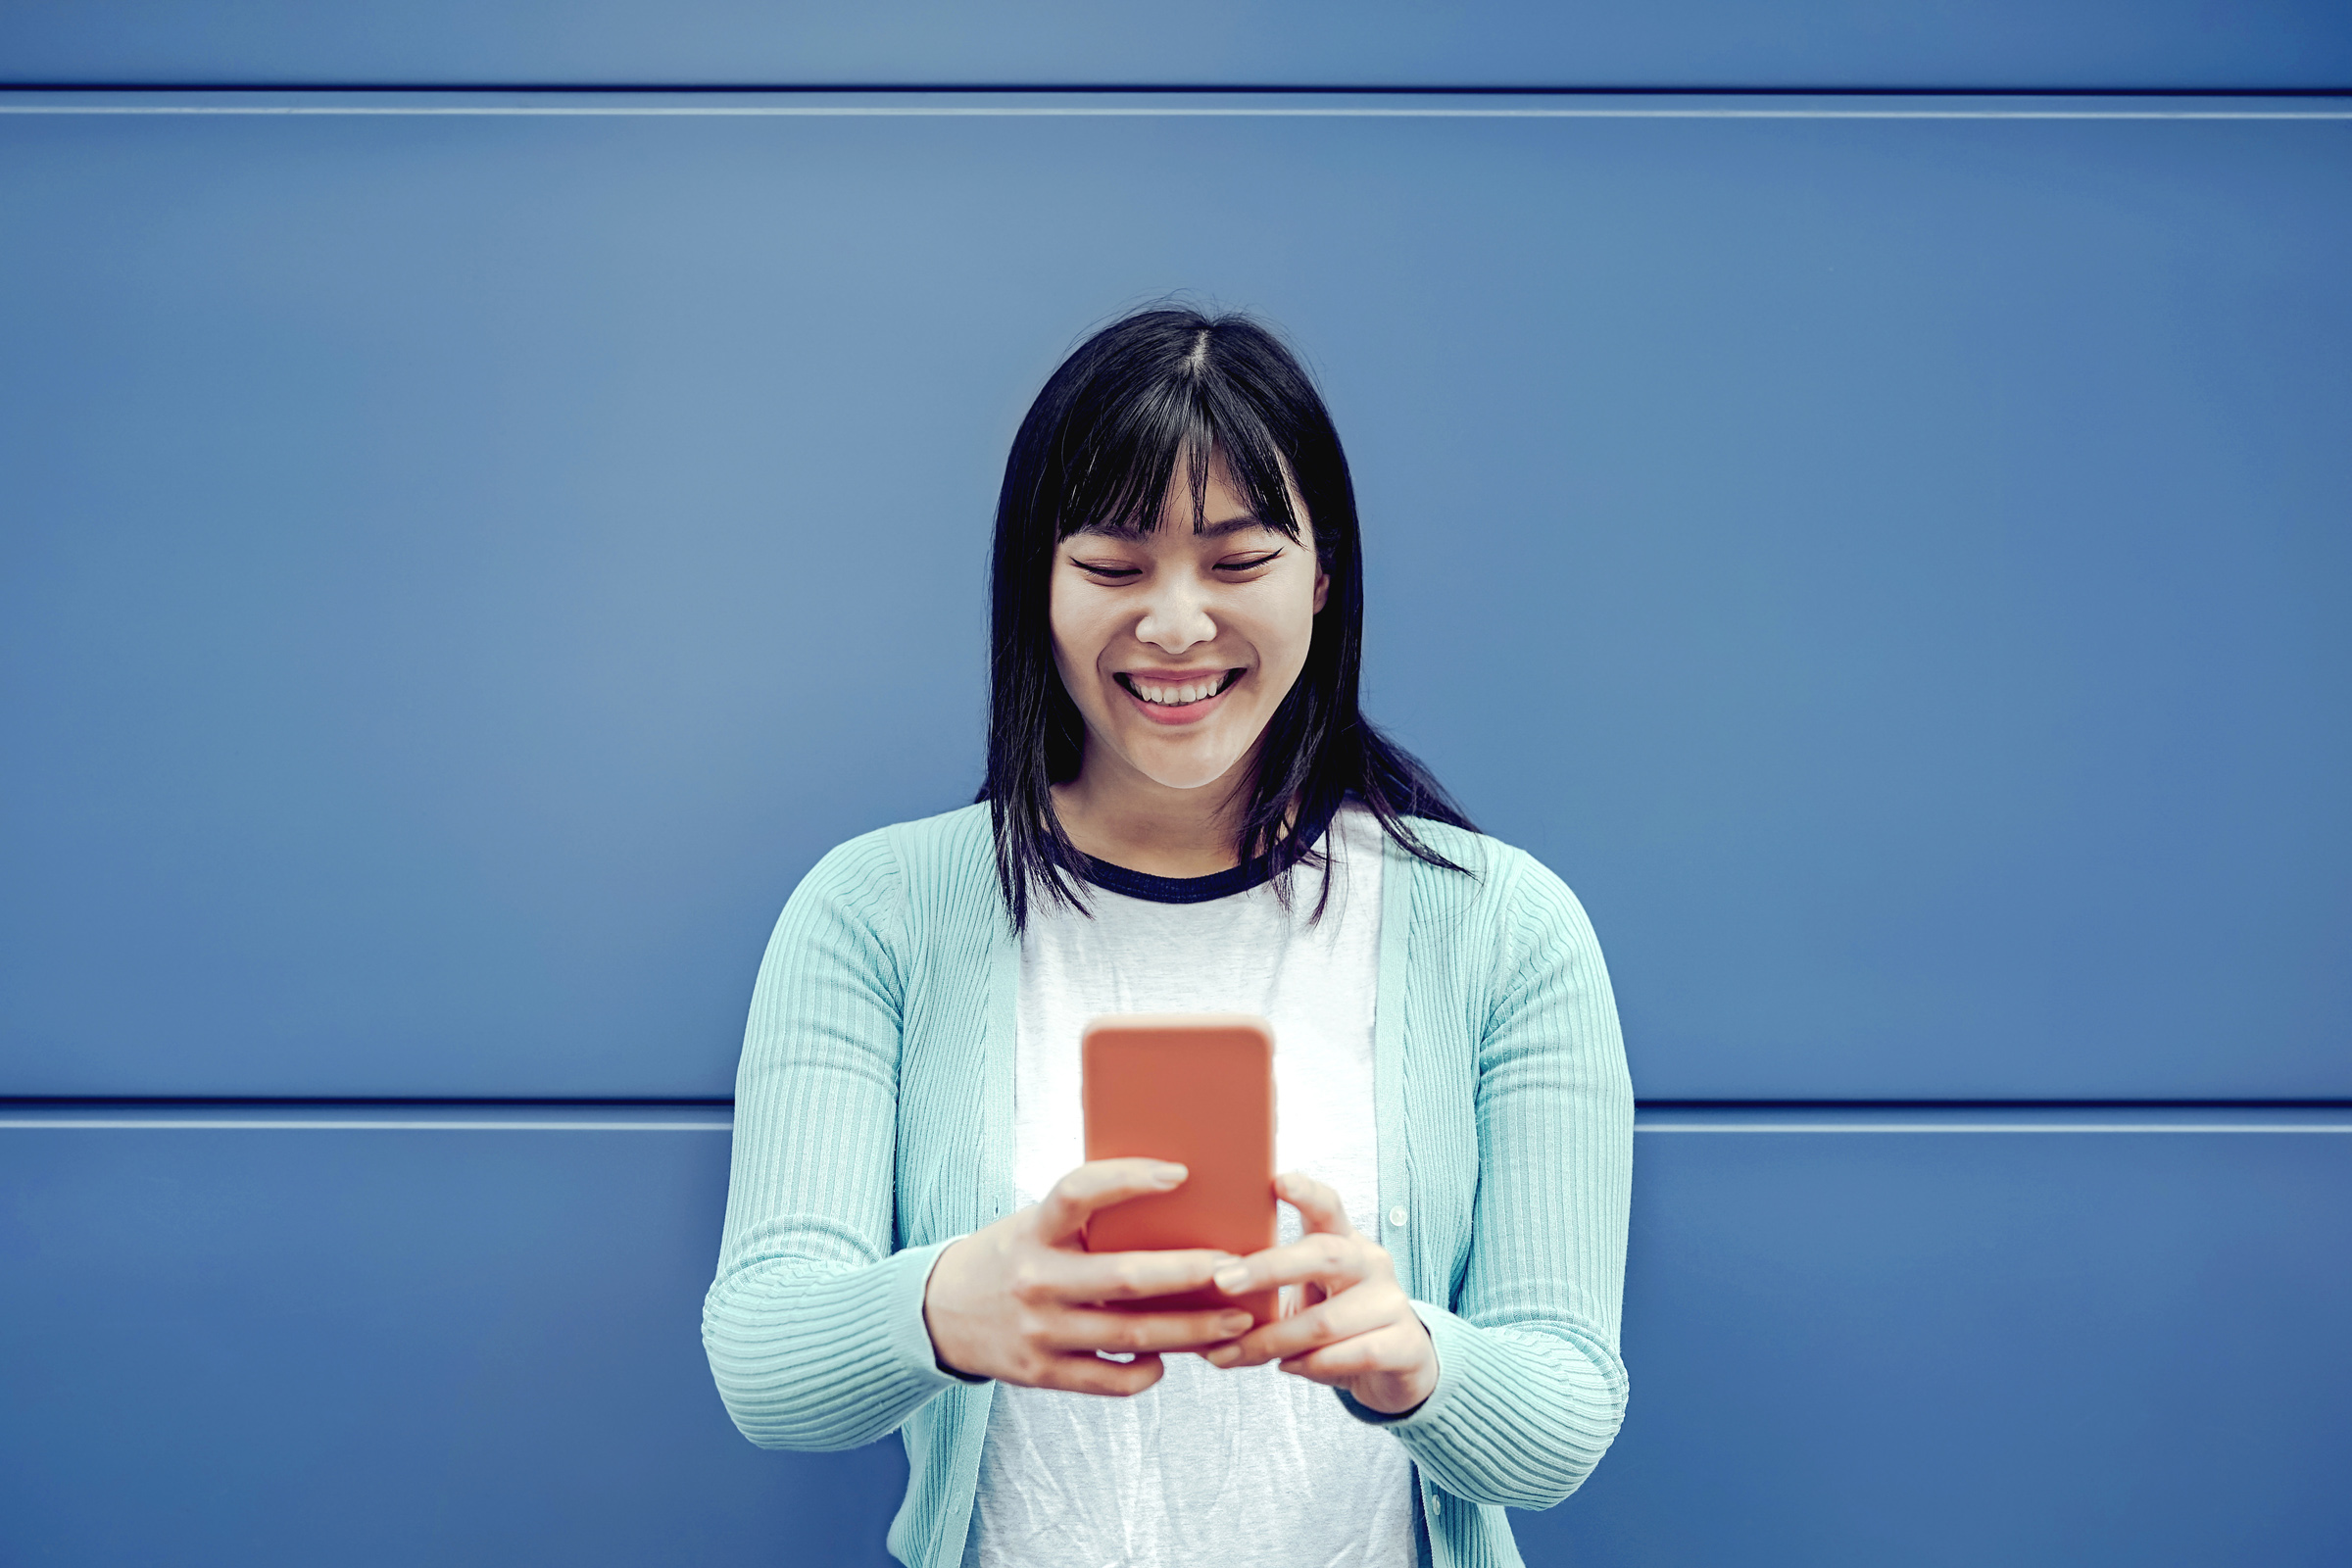 Woman smiling while using smartphone